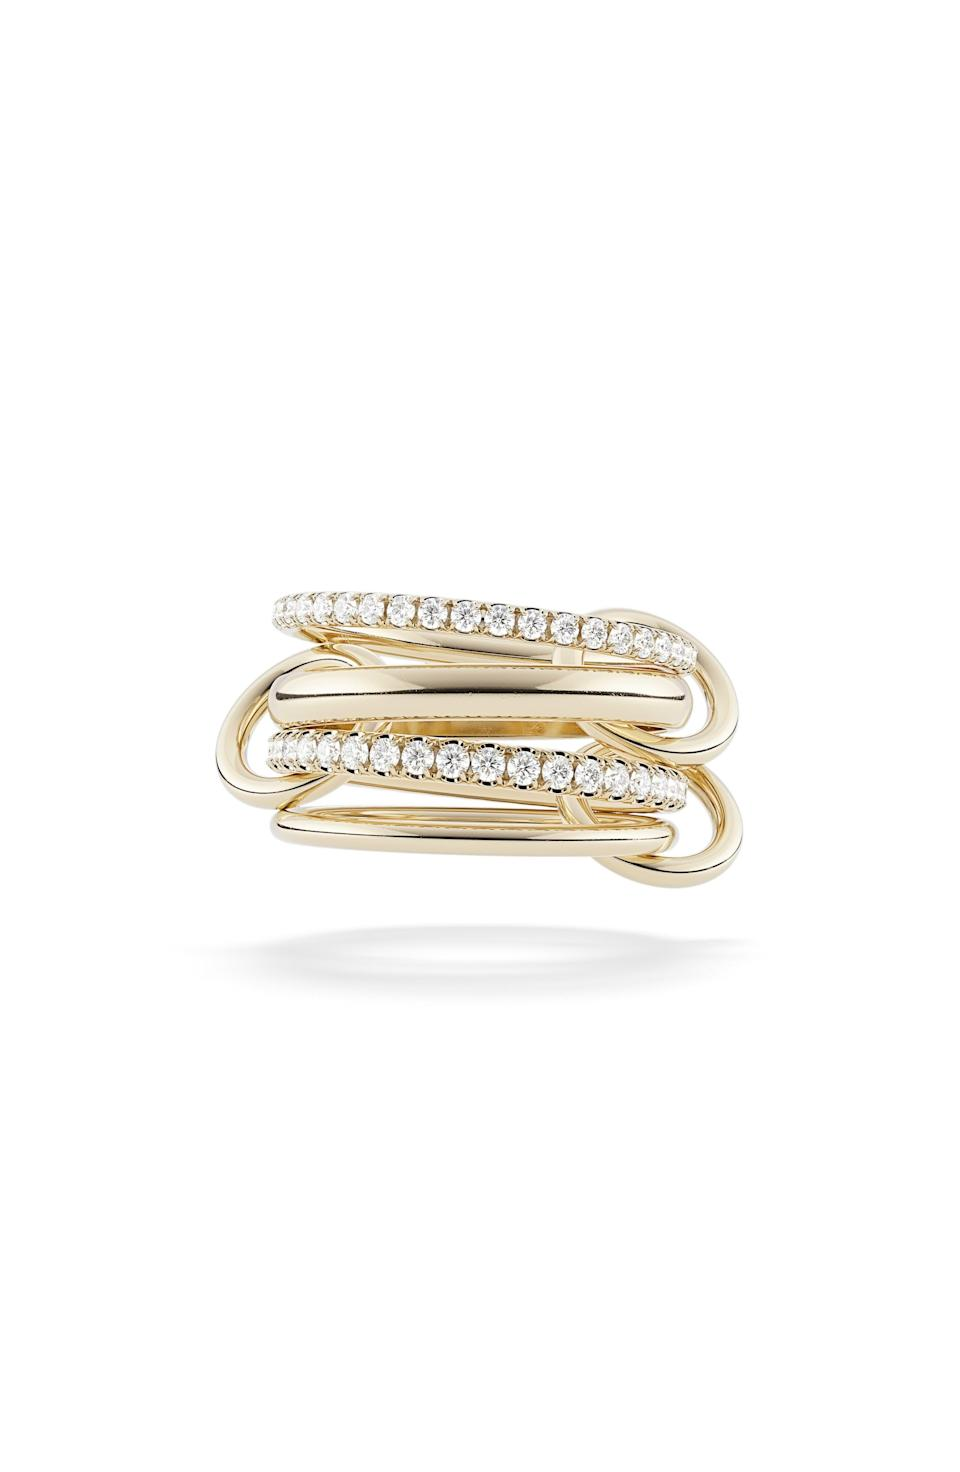 """<p><strong>Spinelli Kilcollin</strong></p><p>nordstrom.com</p><p><strong>$6800.00</strong></p><p><a href=""""https://go.redirectingat.com?id=74968X1596630&url=https%3A%2F%2Fwww.nordstrom.com%2Fs%2Fspinelli-kilcollin-polaris-linked-diamond-rings%2F5932177&sref=https%3A%2F%2Fwww.townandcountrymag.com%2Fstyle%2Fjewelry-and-watches%2Fg37368162%2Ffine-jewelry-brands-at-nordstrom%2F"""" rel=""""nofollow noopener"""" target=""""_blank"""" data-ylk=""""slk:Shop Now"""" class=""""link rapid-noclick-resp"""">Shop Now</a></p><p>Designed by a husband and wife duo, interlocking rings that can be worn stacked or across your hand are the brand's calling card. </p>"""